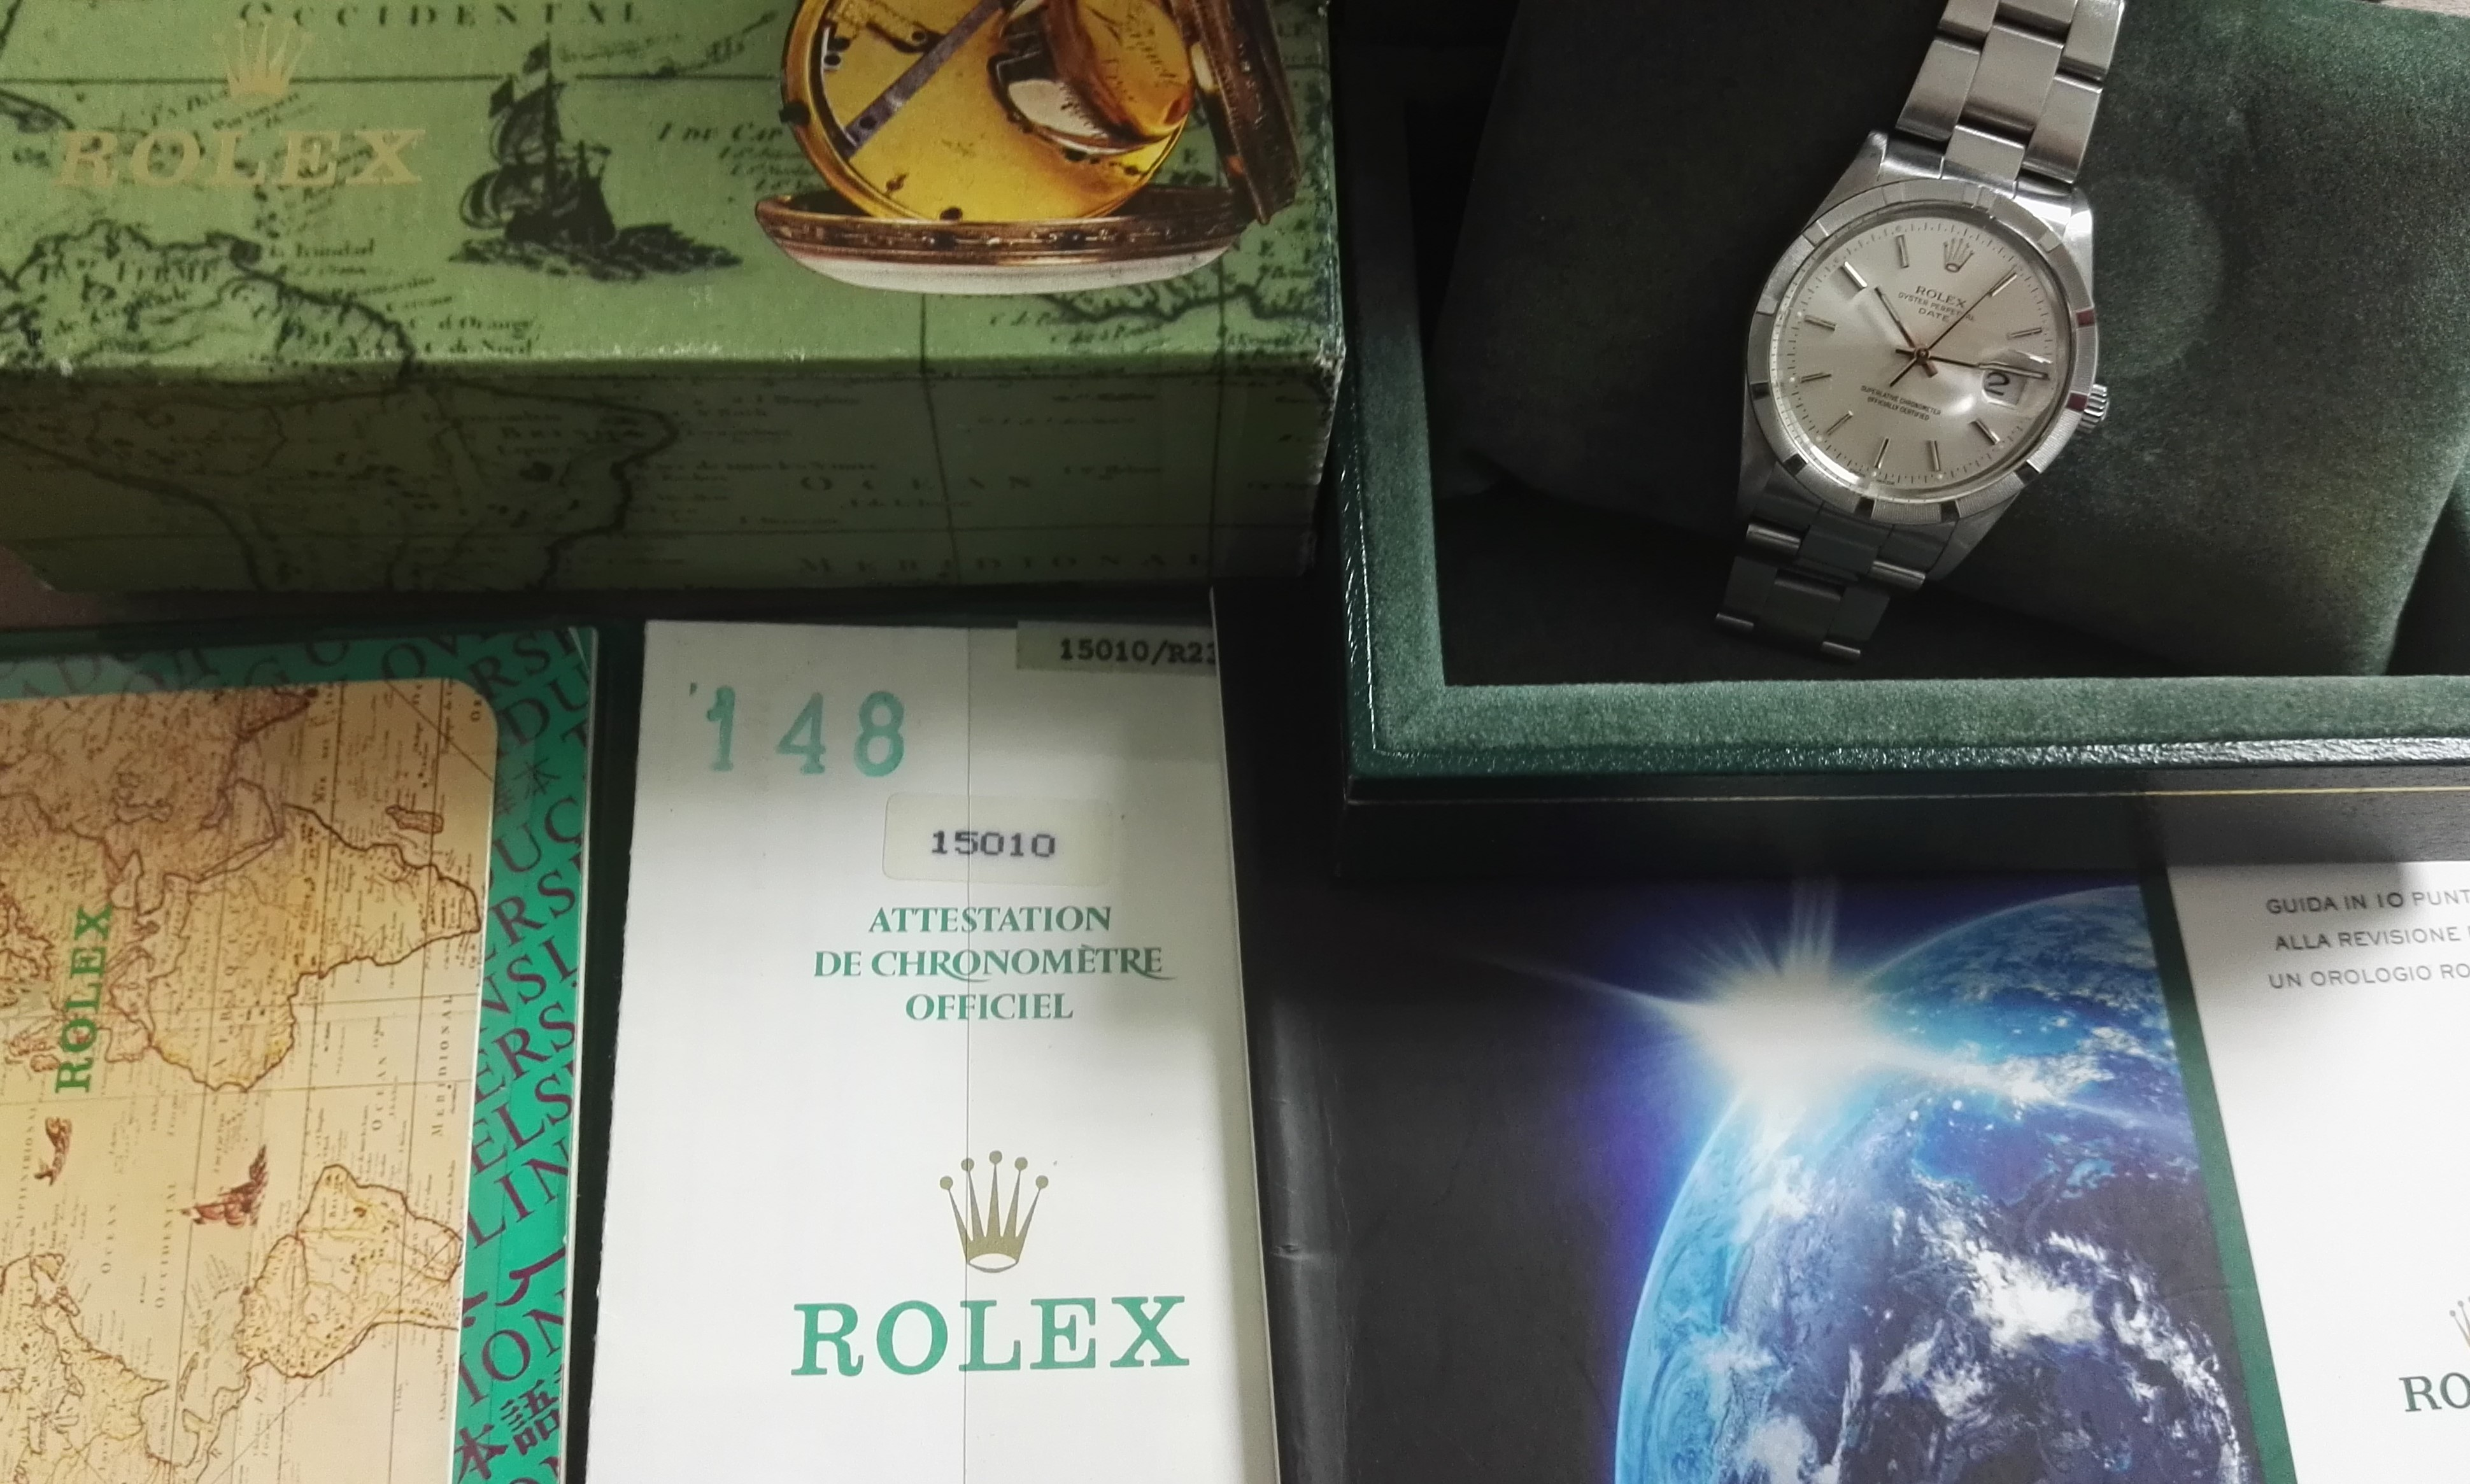 Rolex Oyster Perpetual Date Date 15010 Year 1987 34 Mm Stainless Steel Watch full set | San Giorgio a Cremano